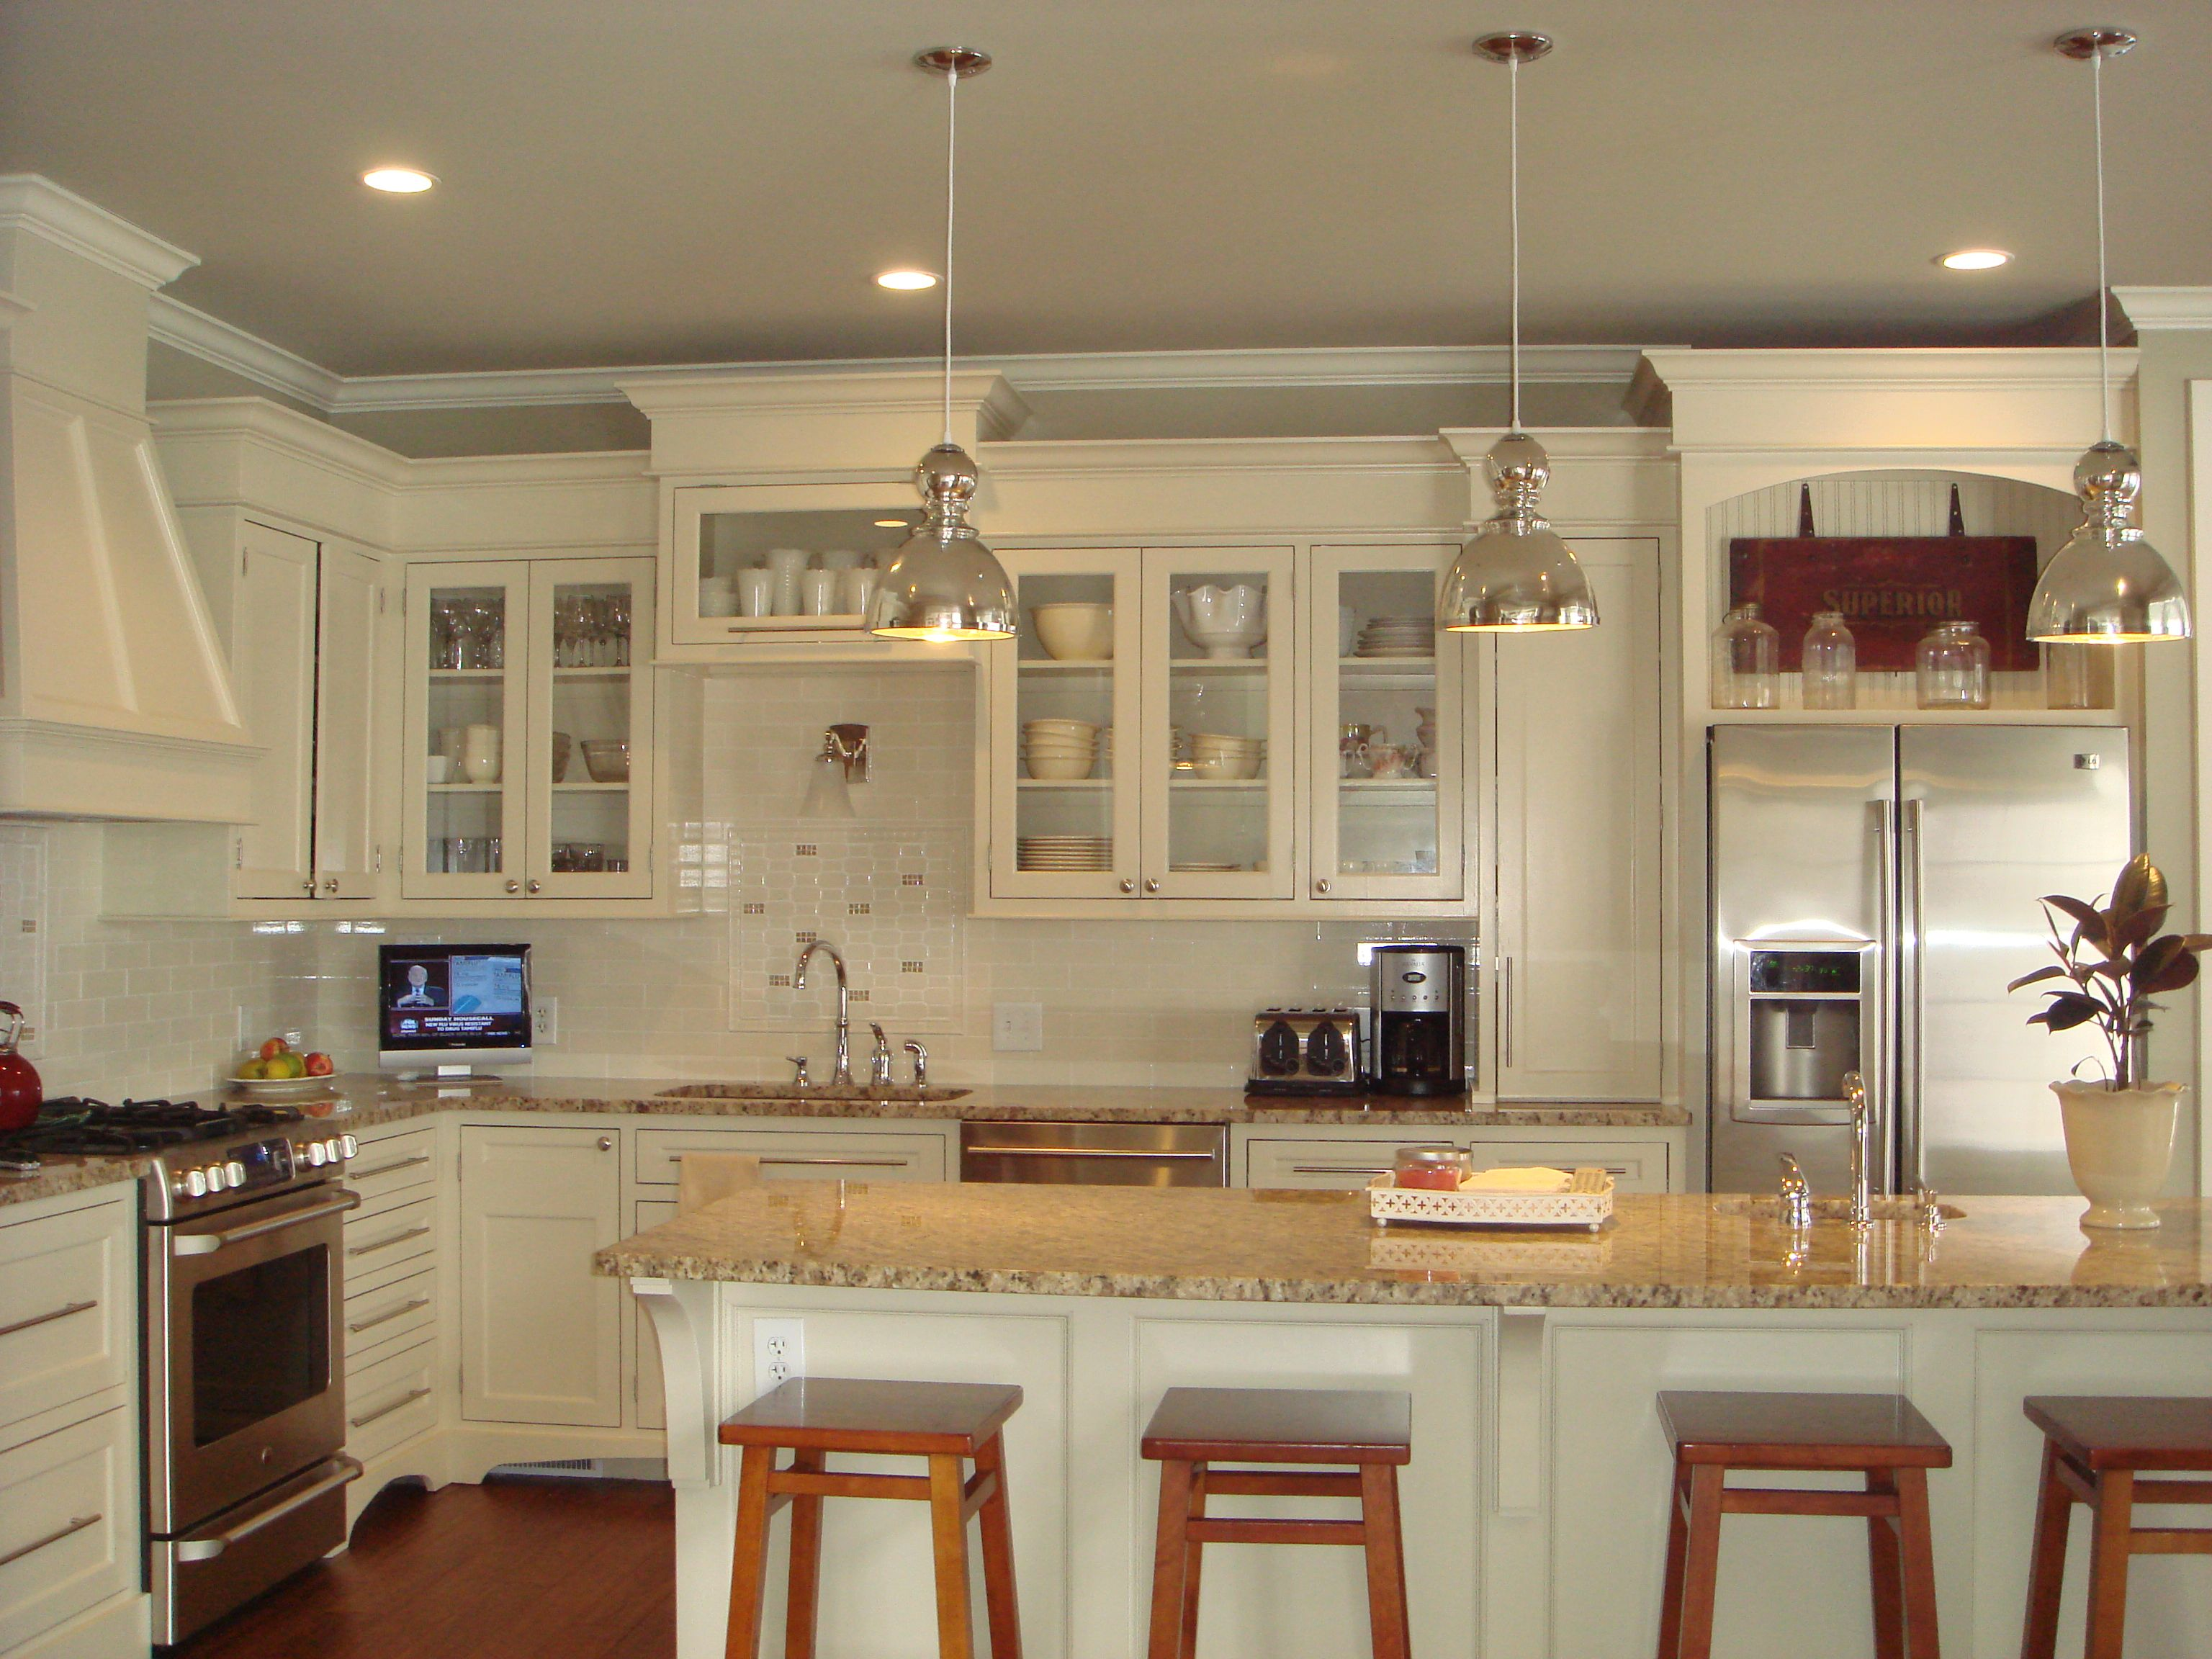 Best Kitchen Gallery: Want To Repaint The Cabi S White Cream Upgrade To Granite Or of Tan Kitchen Cabinets on rachelxblog.com